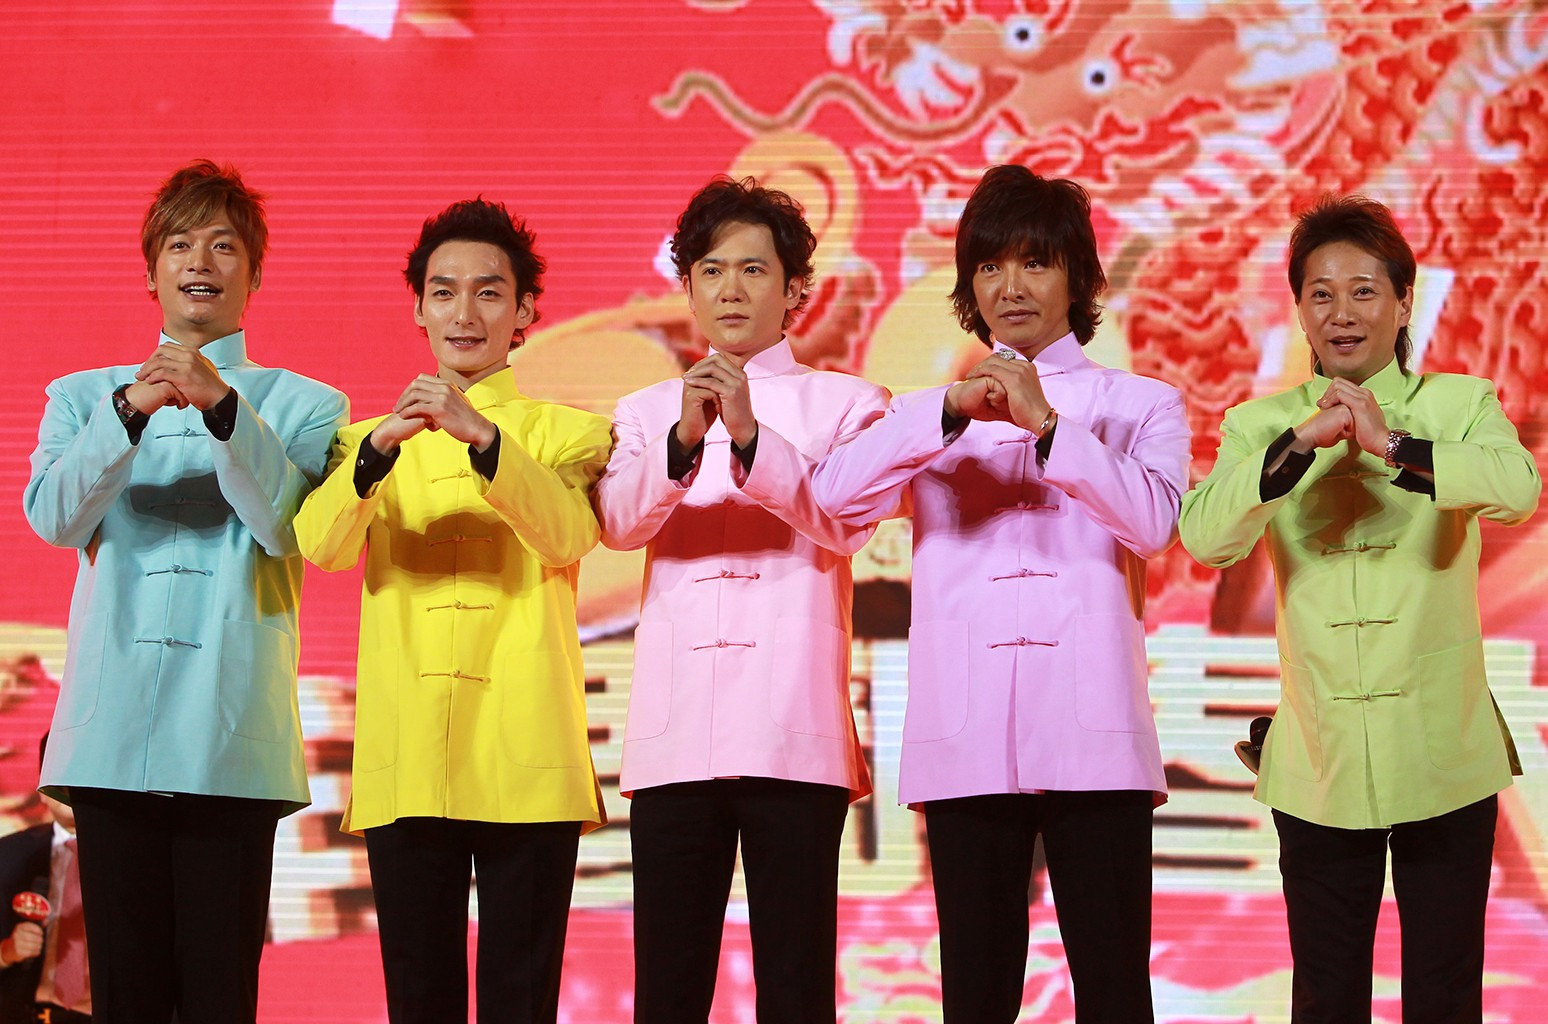 SMAP photographed in Shanghai